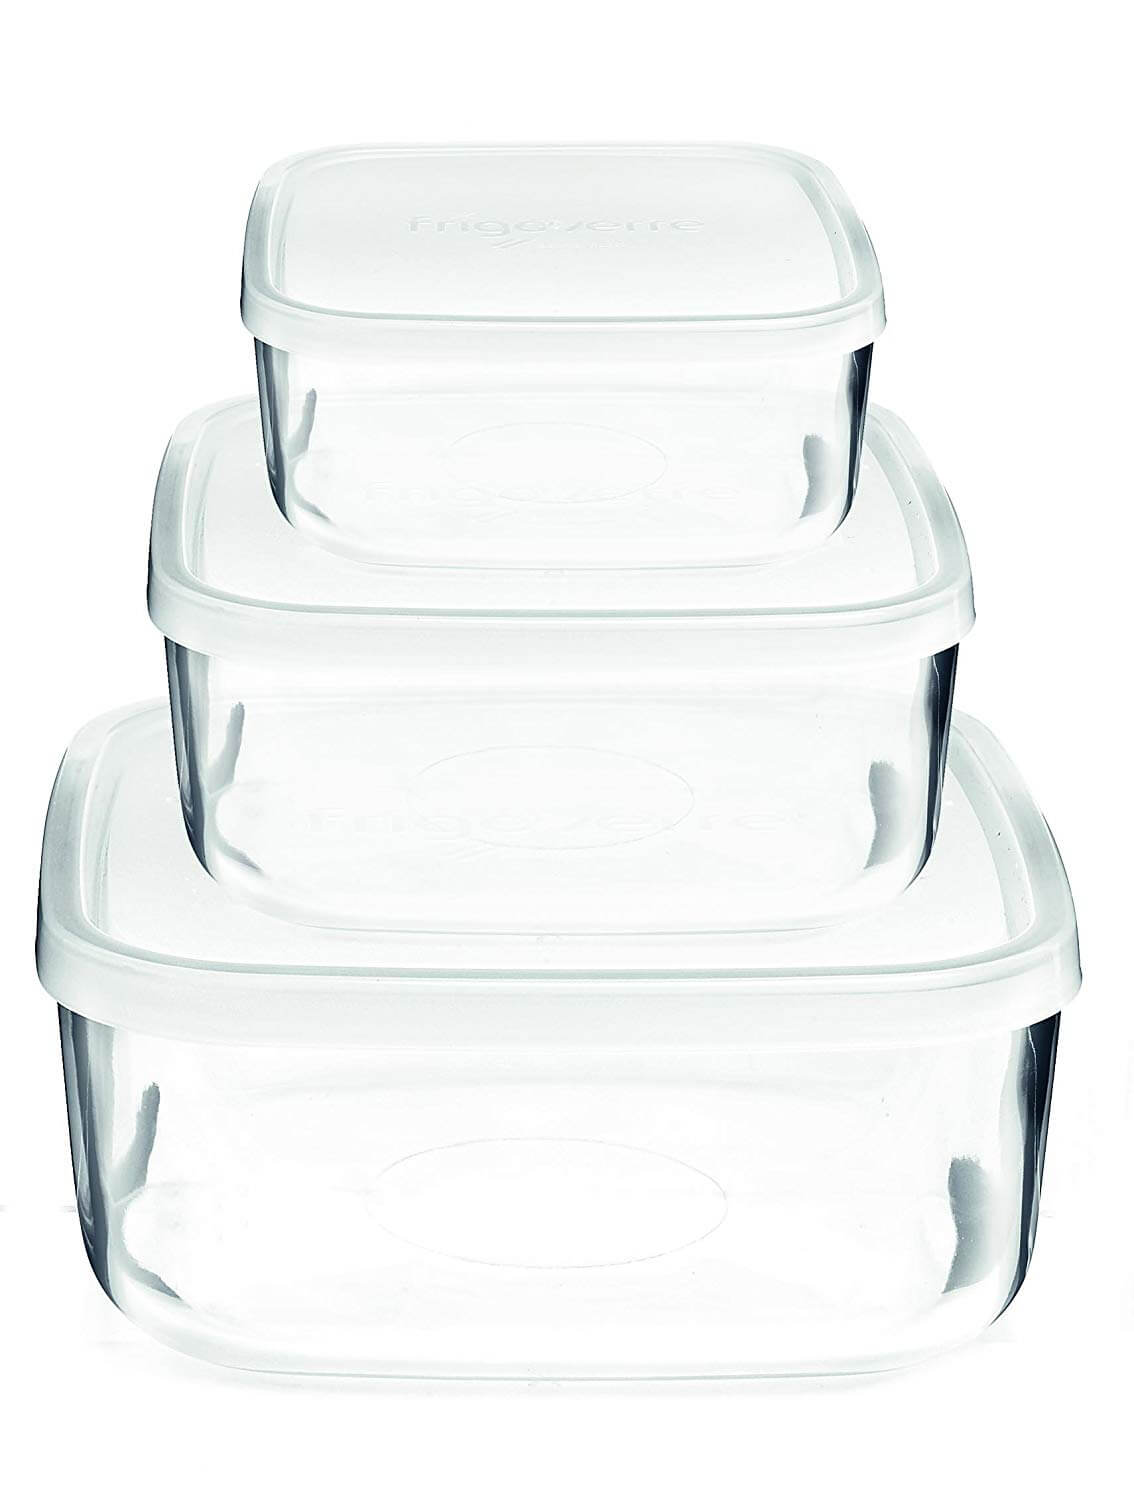 Bormioli Rocco Frigoverre Square Glass Food-Storage Containers